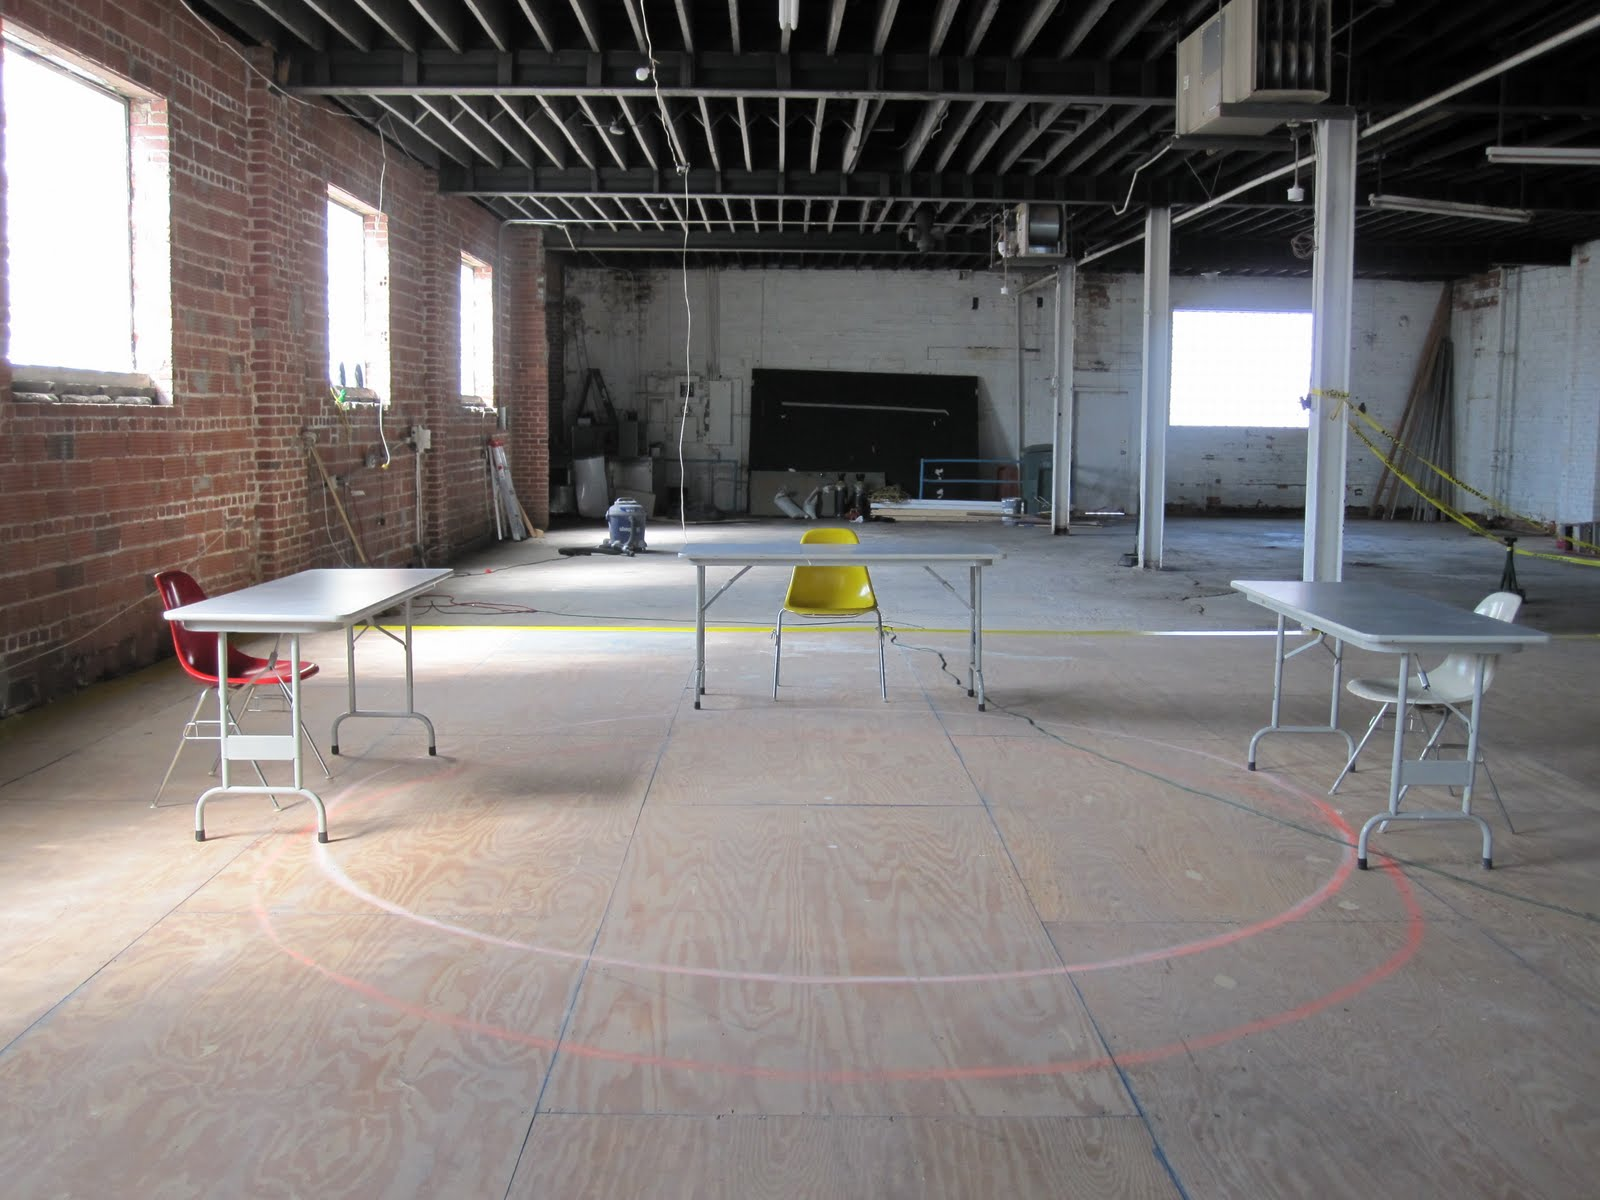 office-of-collective-play-columbus-college-of-art--design-columbus-ohio_7407421210_o.jpg